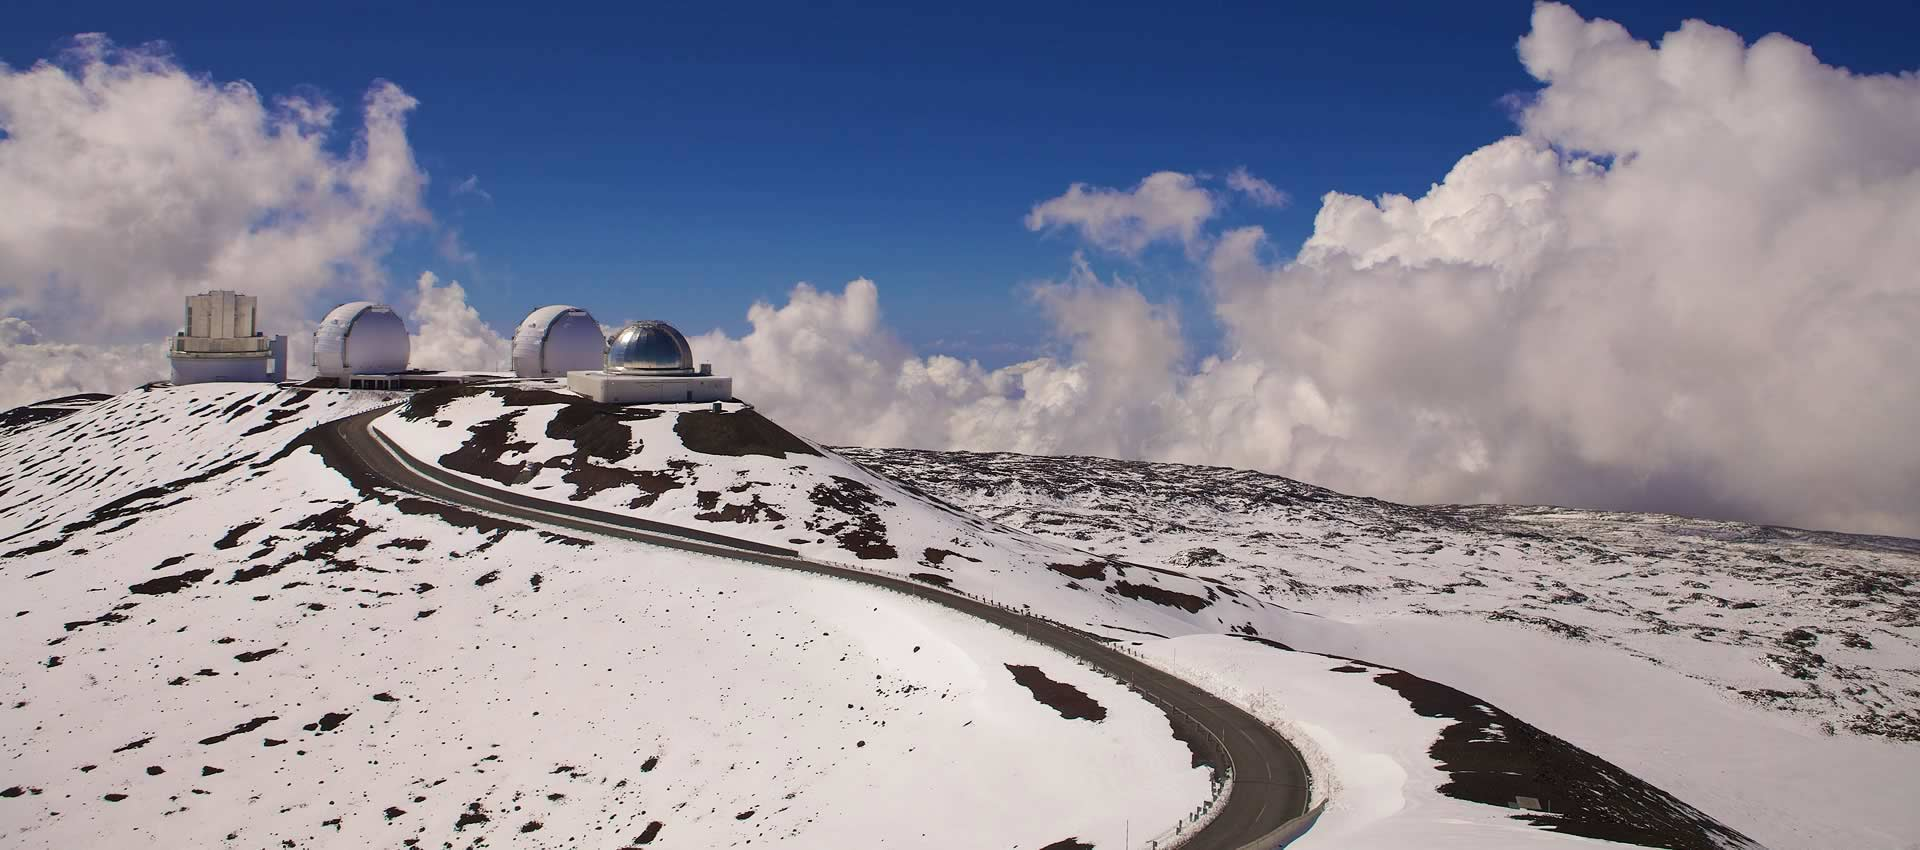 Volcano-Hawaii-snow-mountain